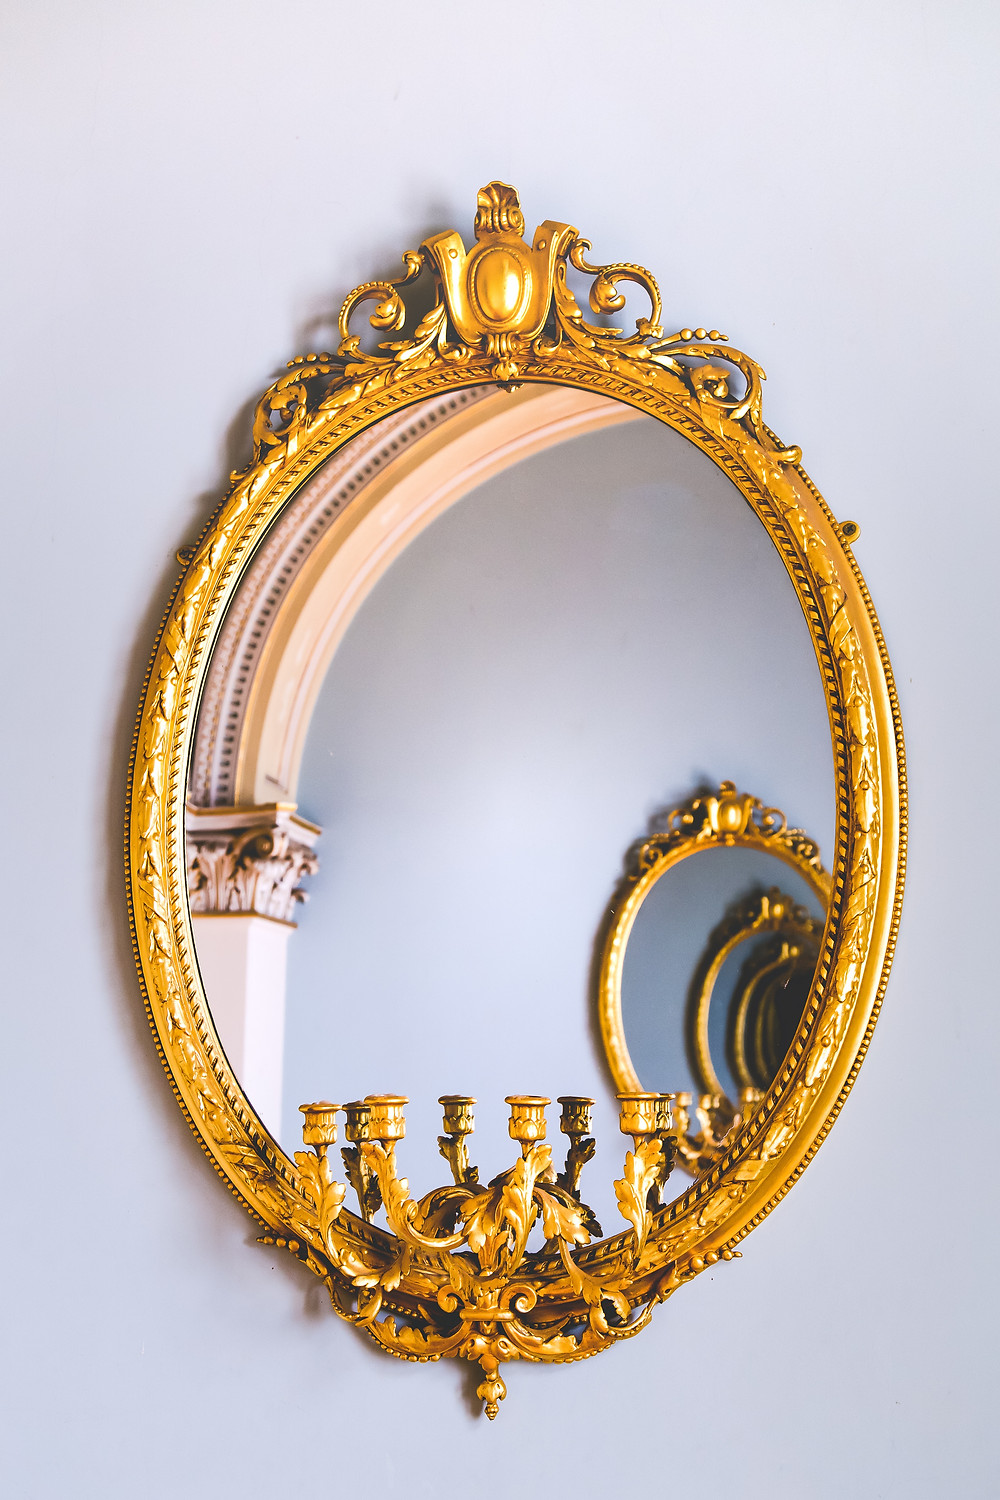 Golden mirror on a wall reflecting another golden mirror into infinity